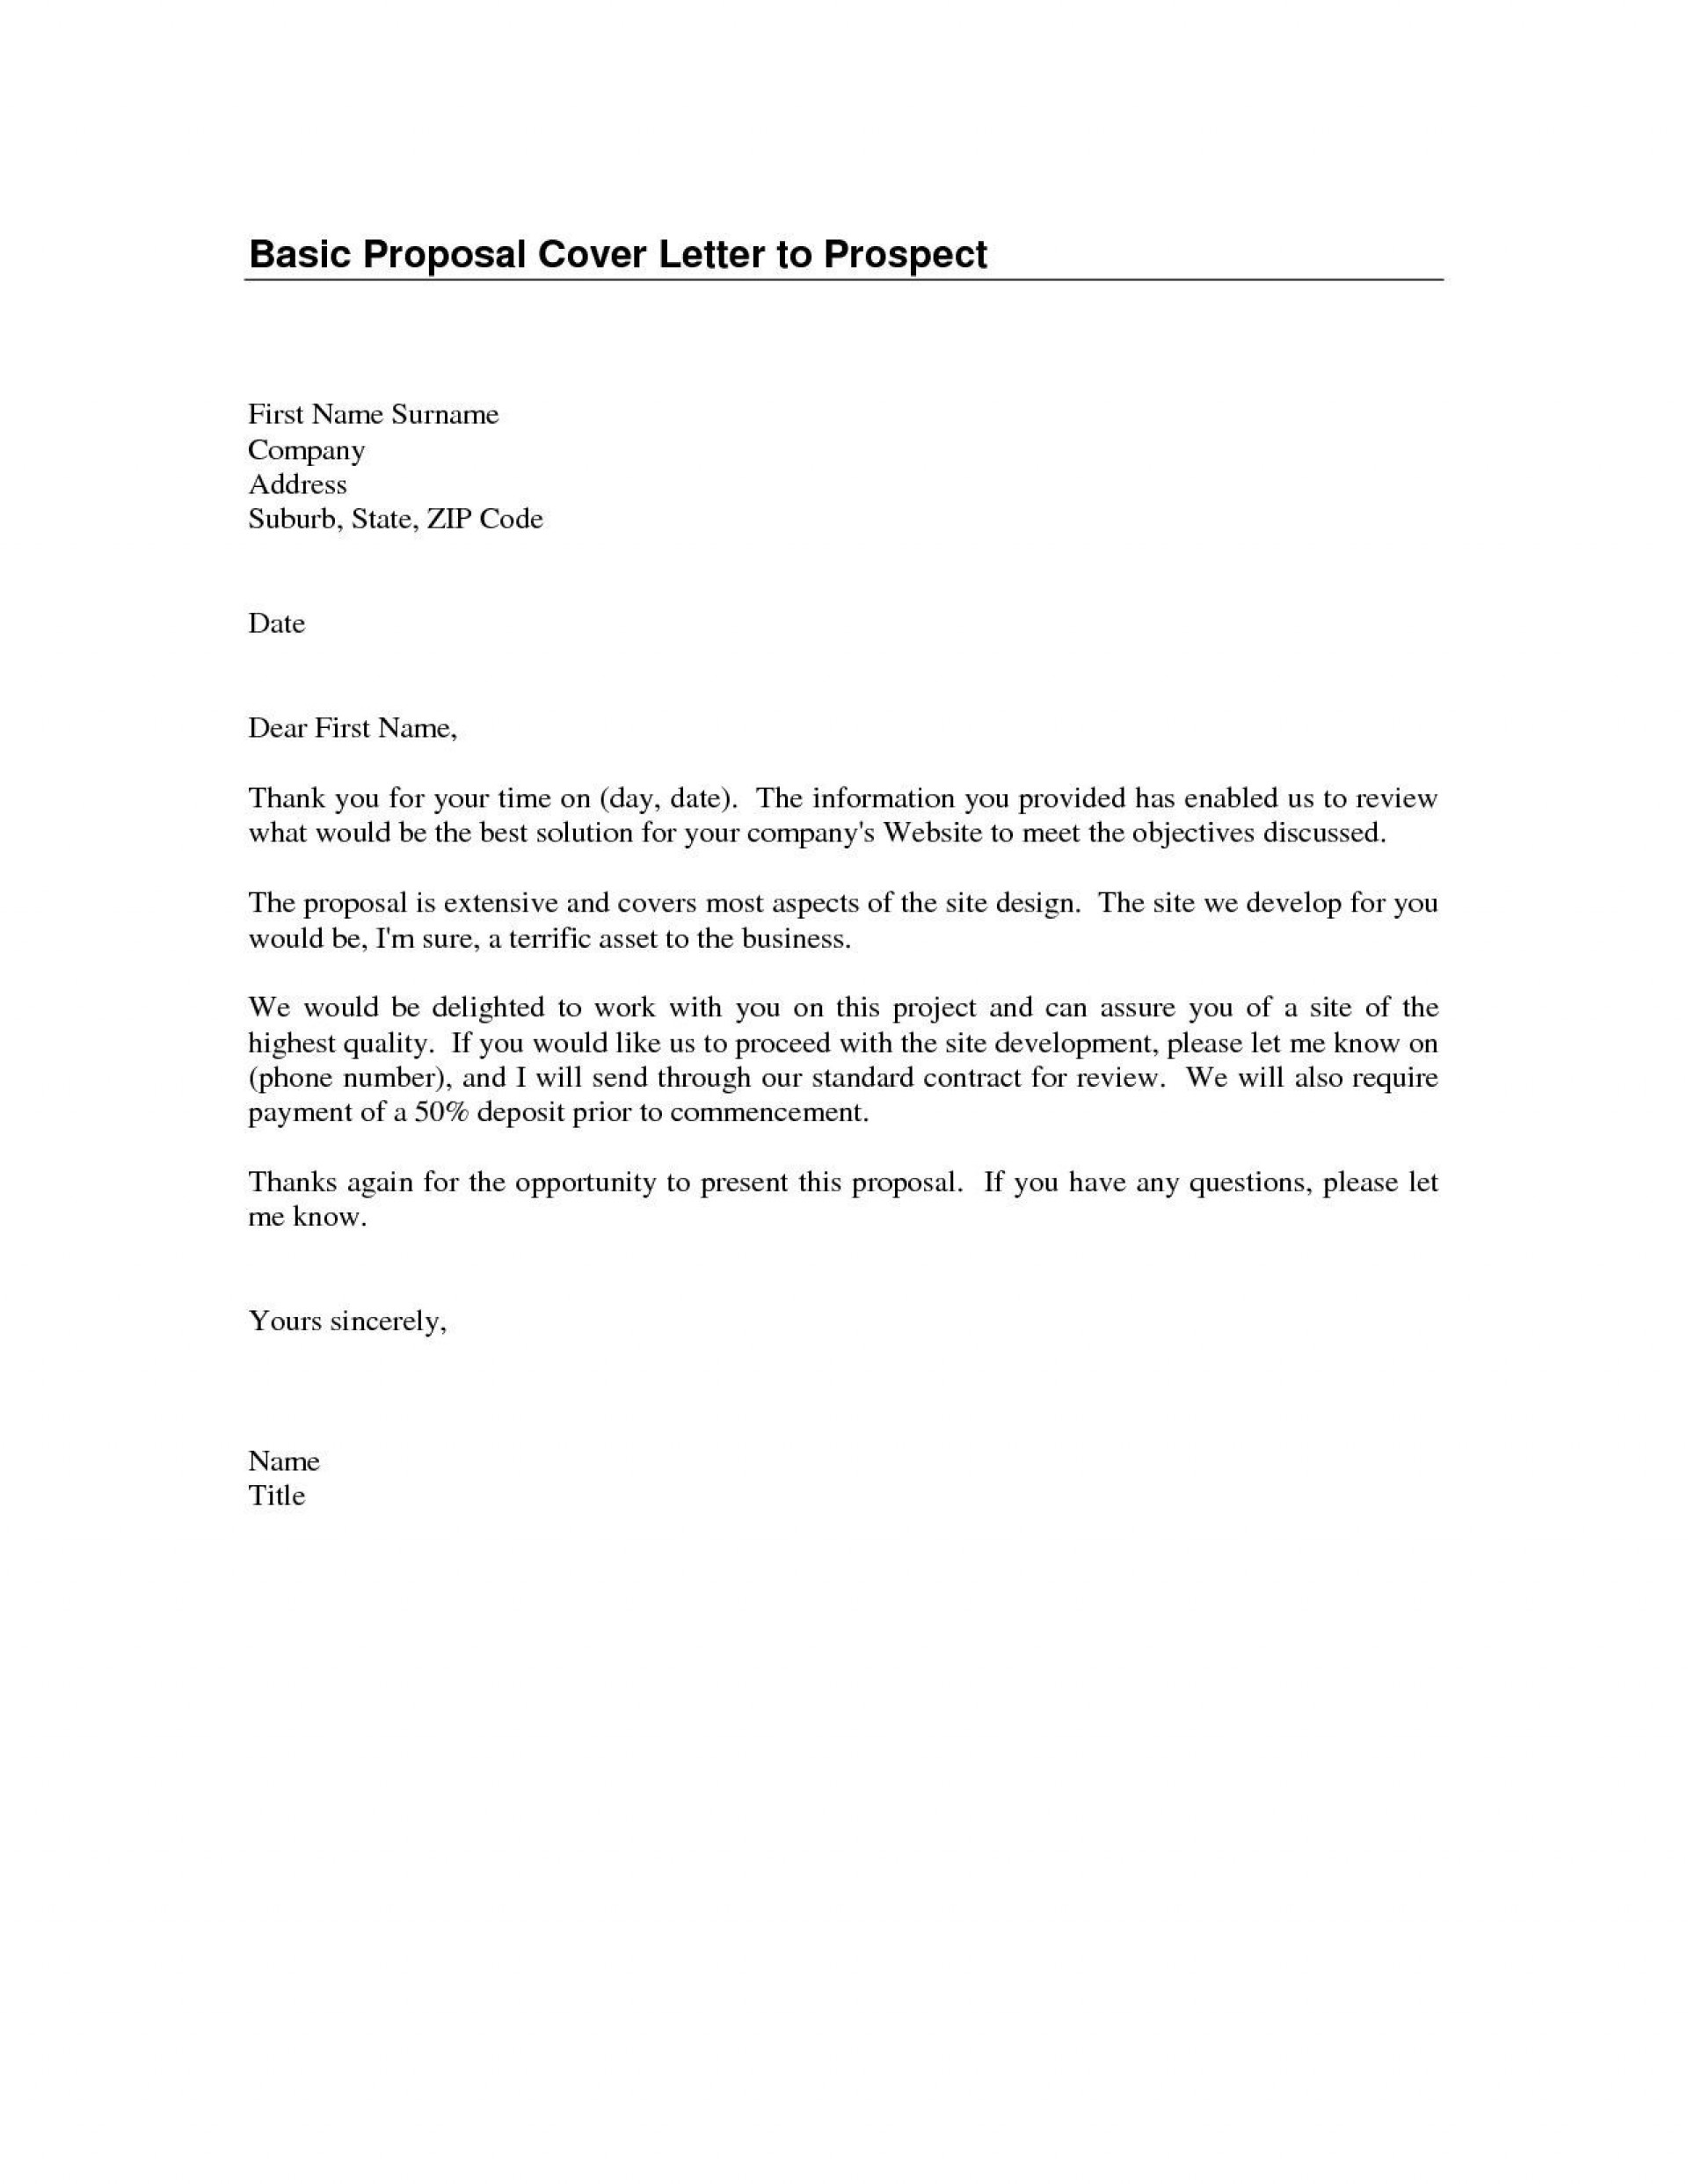 000 Archaicawful Basic Covering Letter Template Picture  Simple Application Job Sample Cover1920